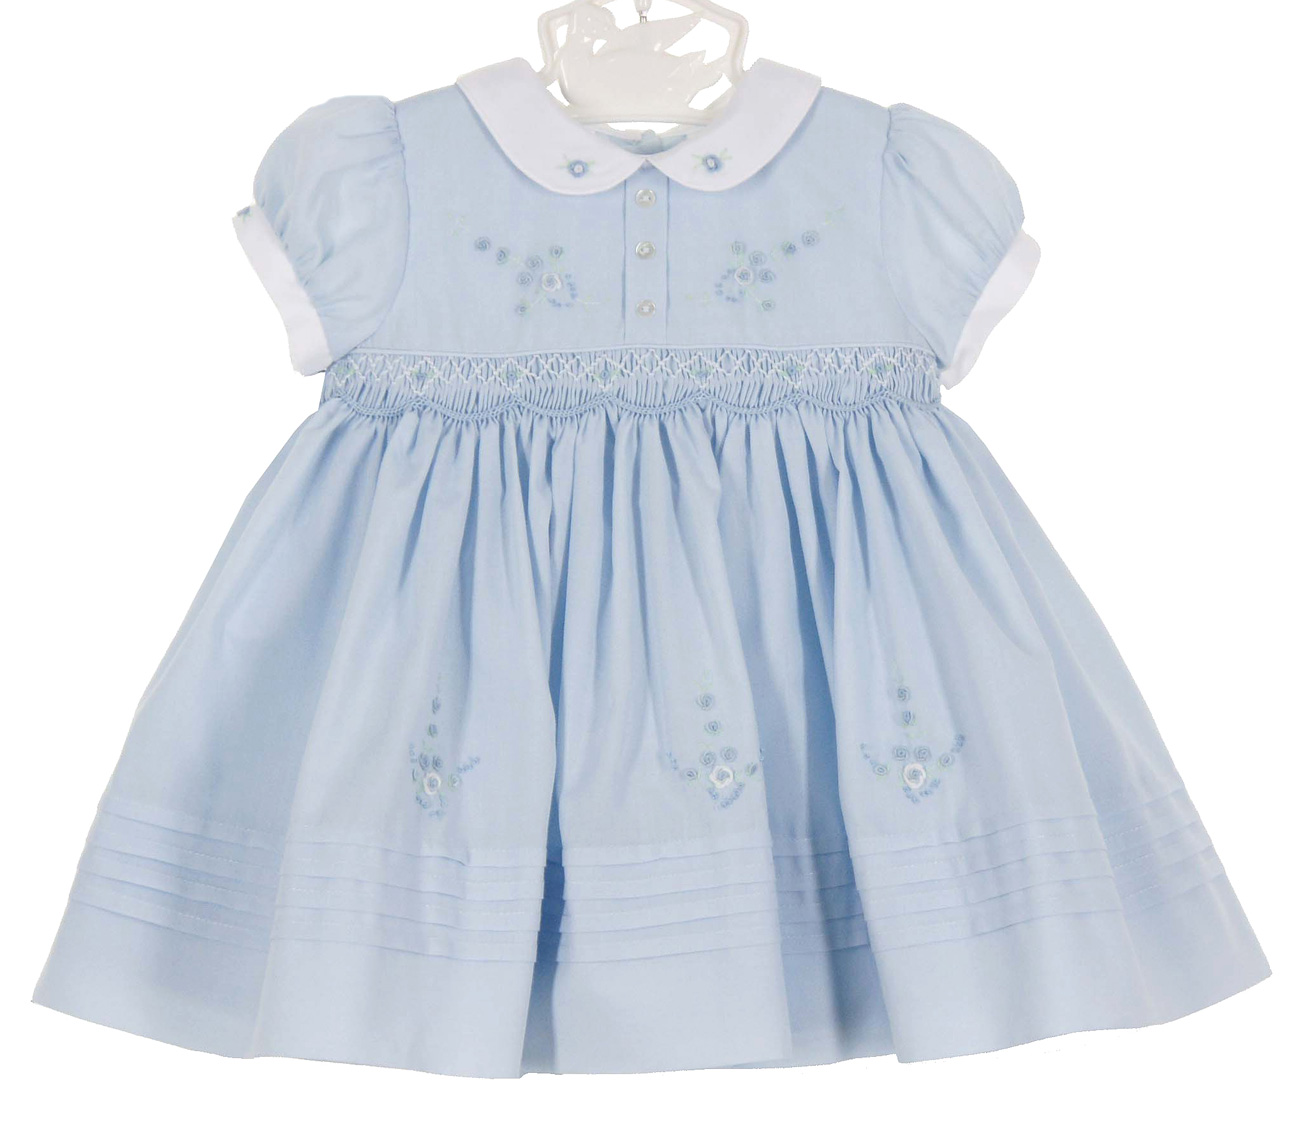 Sarah Louise Vintage Style Blue Smocked Dress Vintage